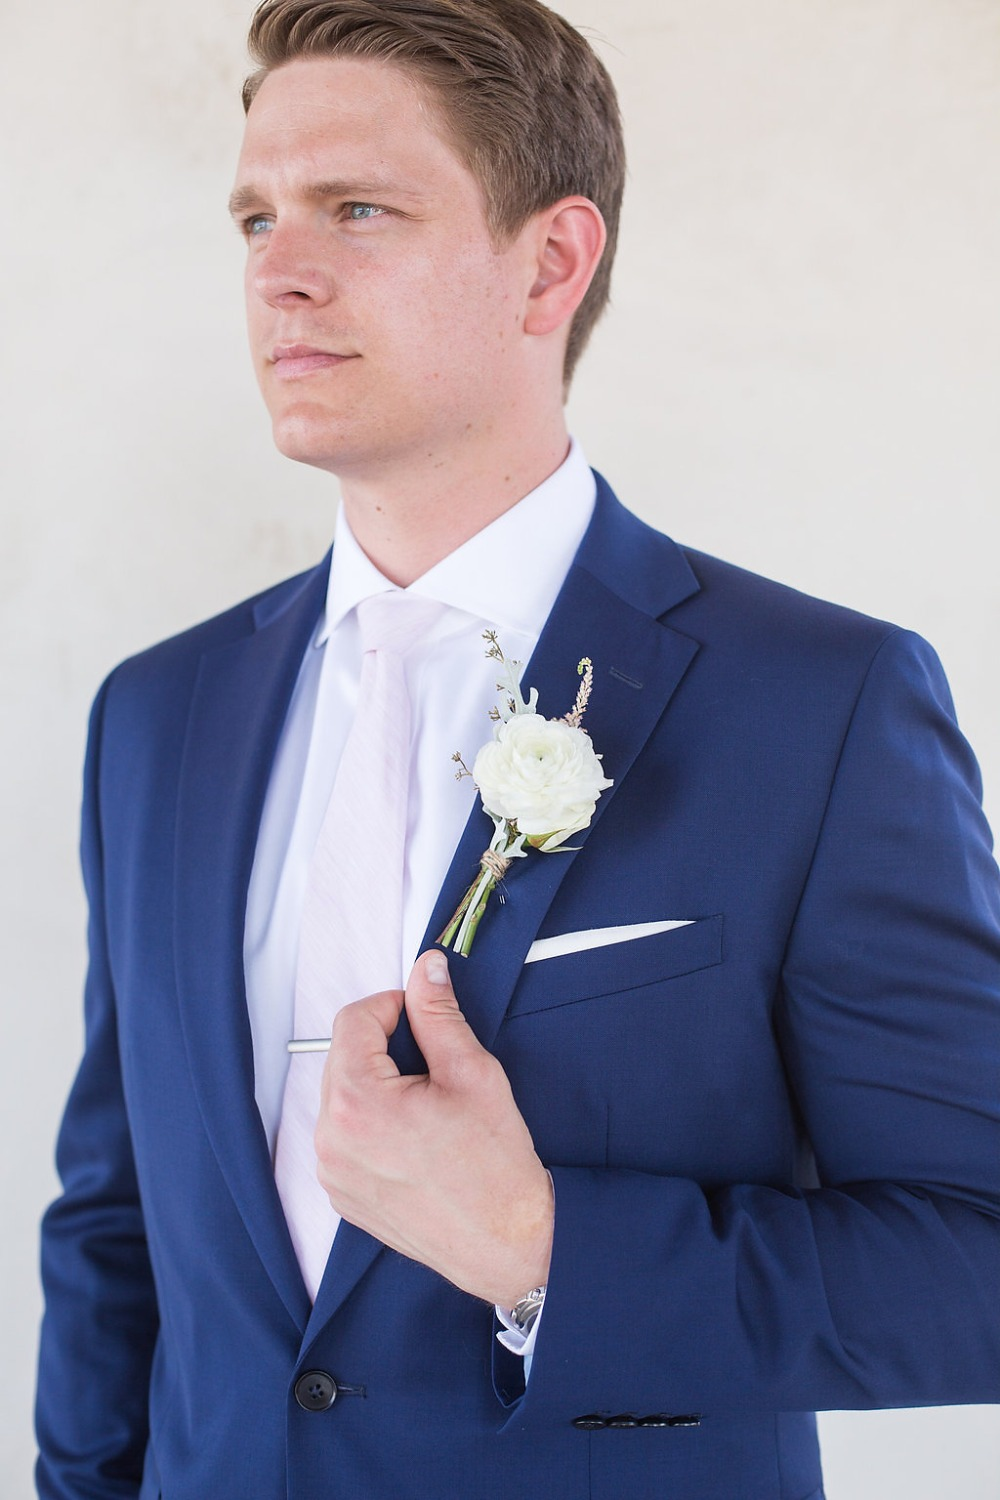 groom in blush pink tie and navy suit